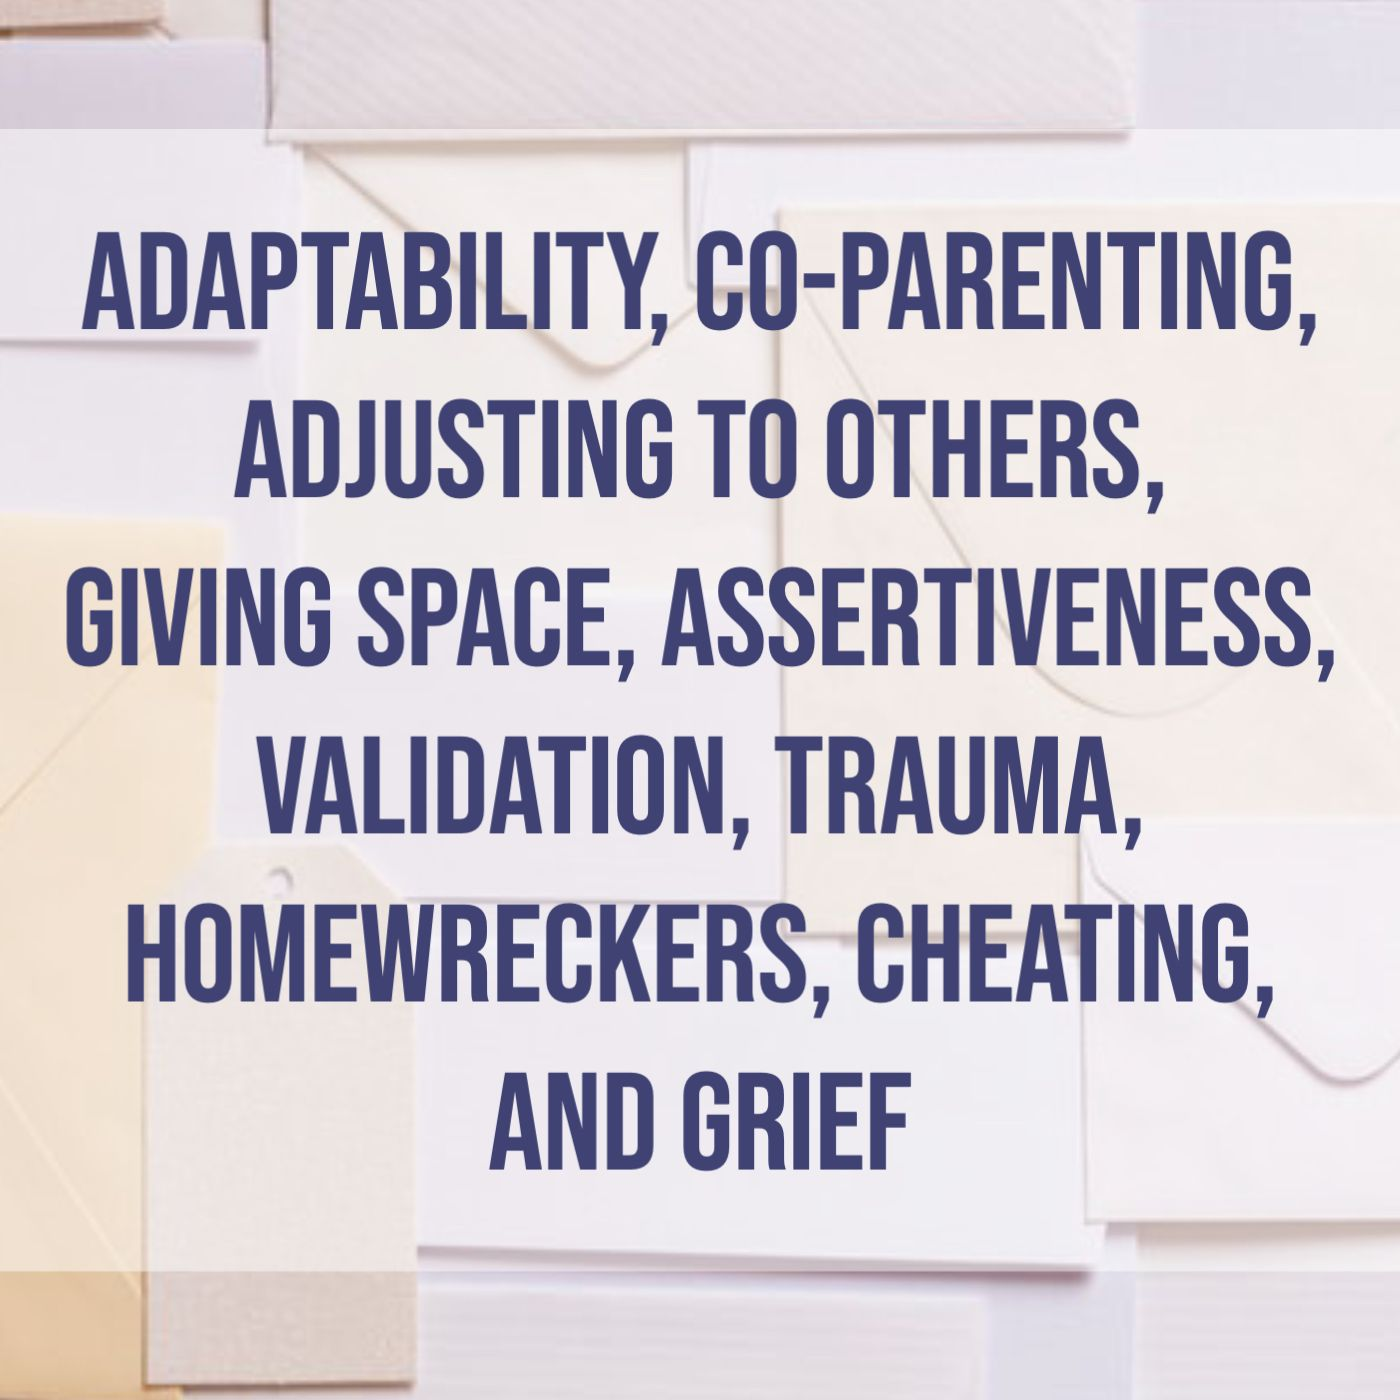 Adaptability, Co-Parenting, Adjusting to Others, Giving Space, Assertiveness, Validation, Trauma, Homewreckers, Cheating